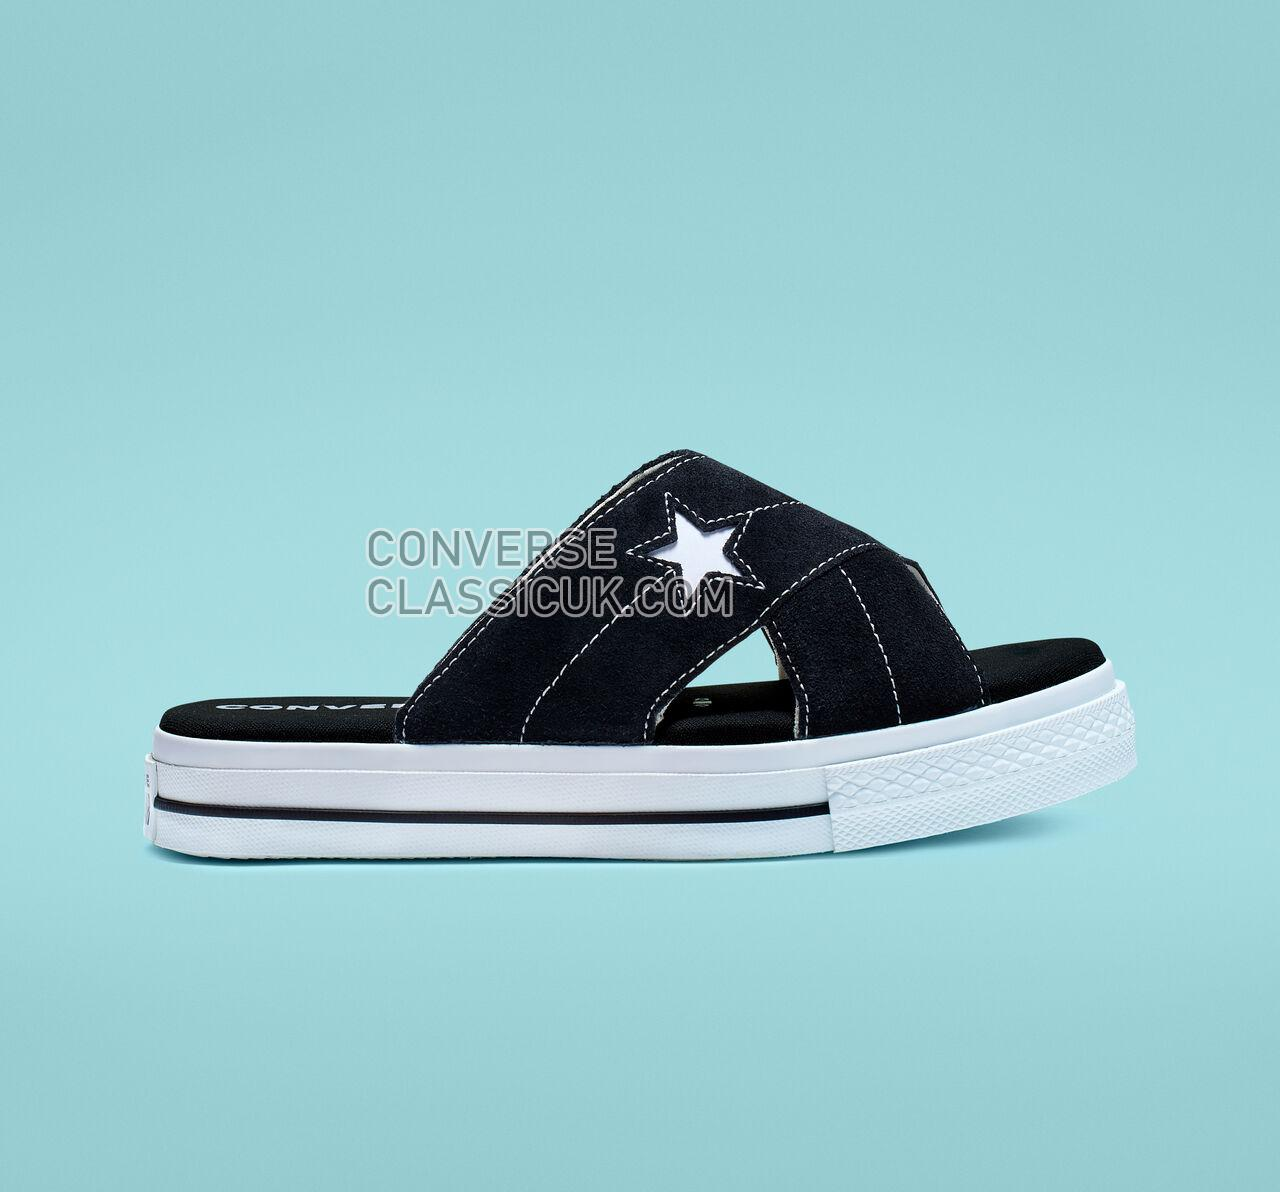 Converse One Star Sandalism Womens 564143C Black/Egret/White Shoes